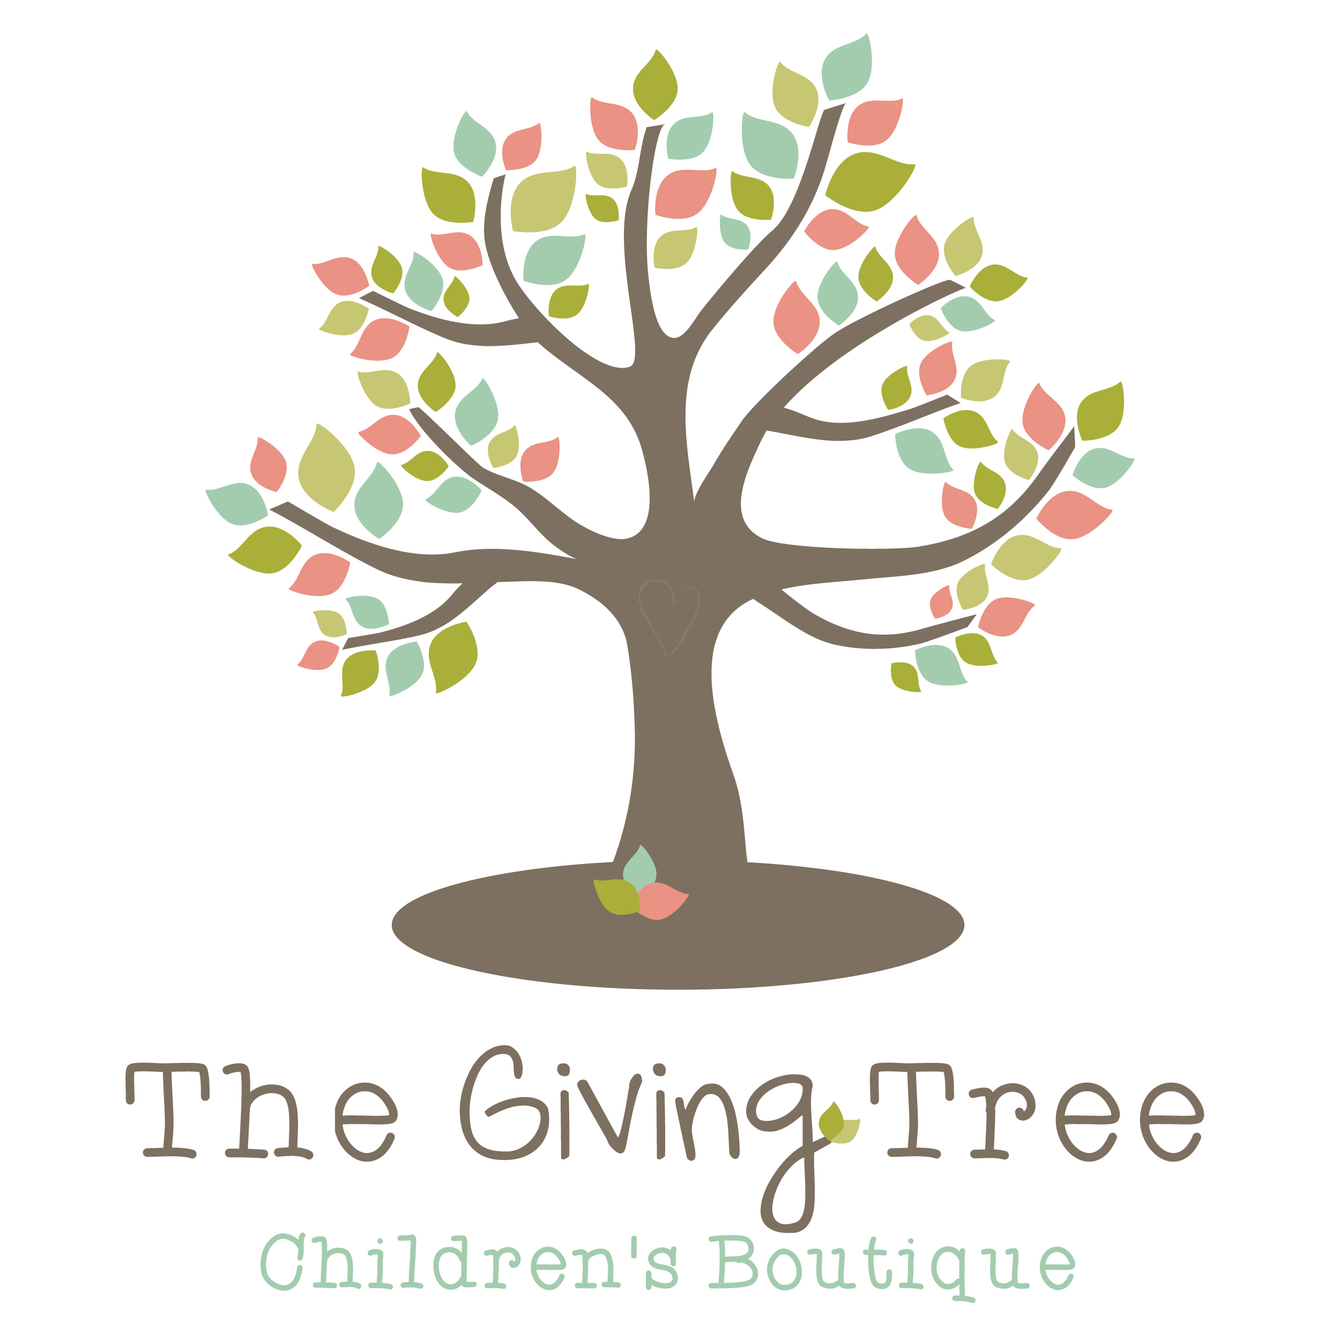 The Giving Tree Children's Boutique